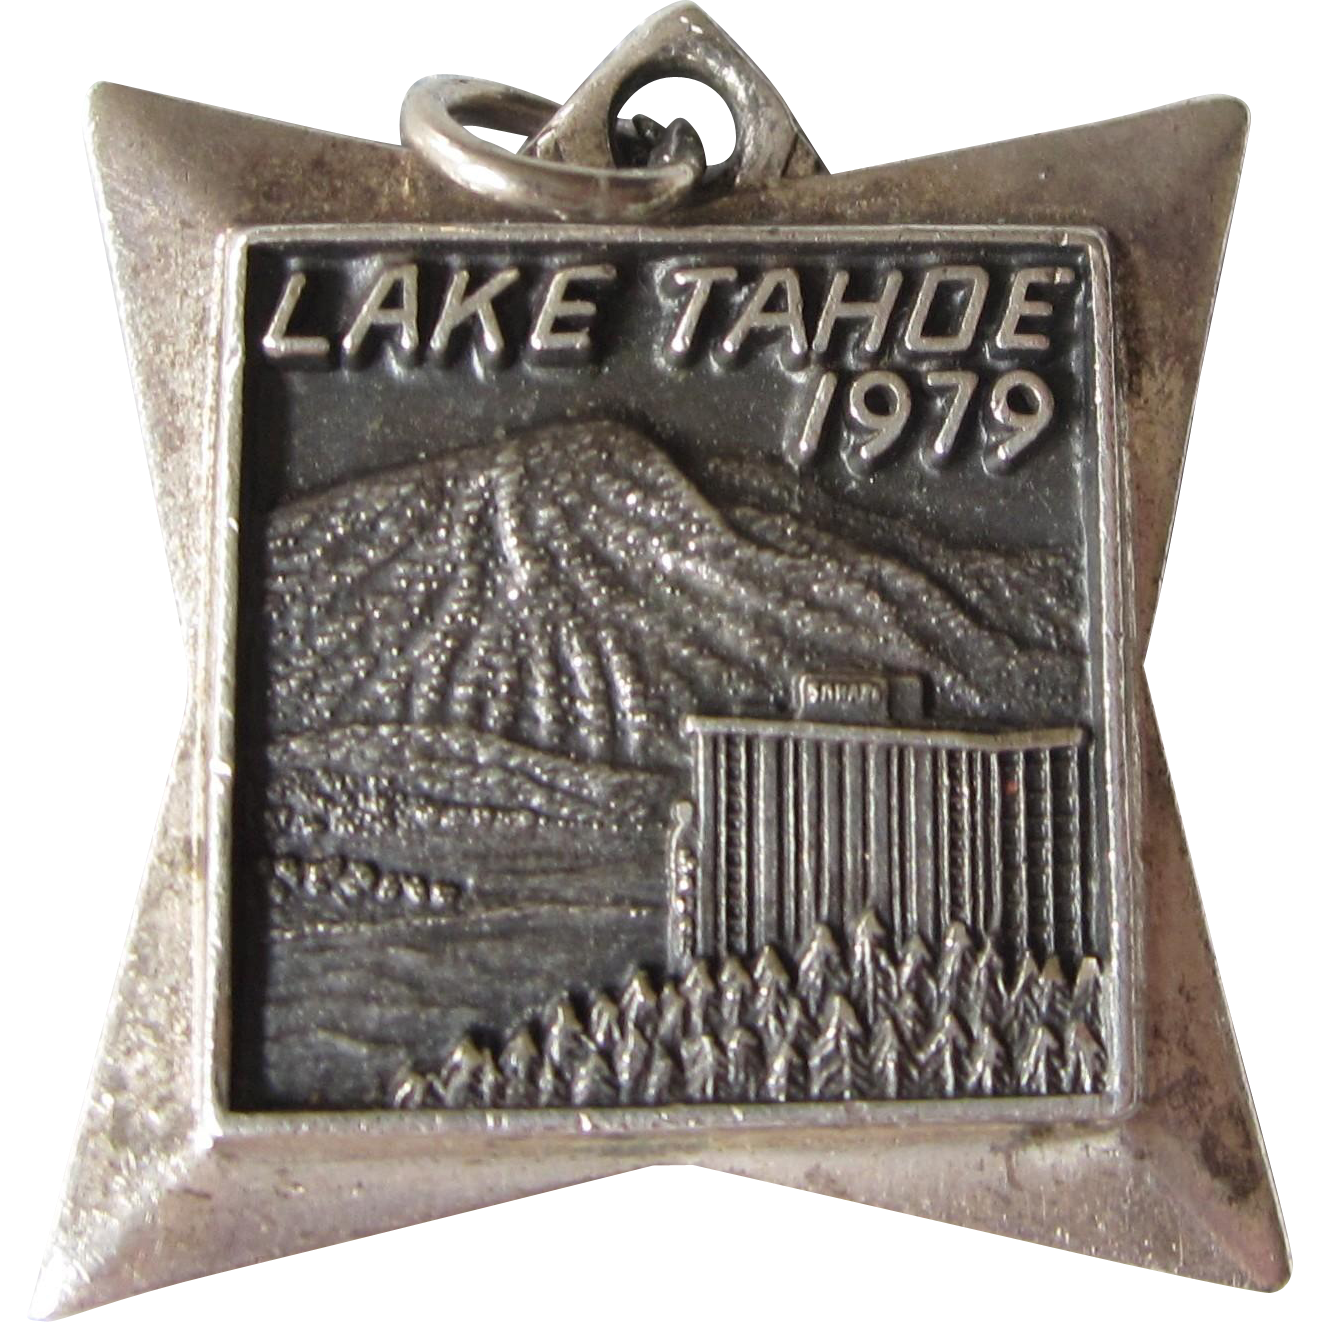 Vintage sterling lake tahoe 1979 travel charm from for Lake tahoe jewelry stores